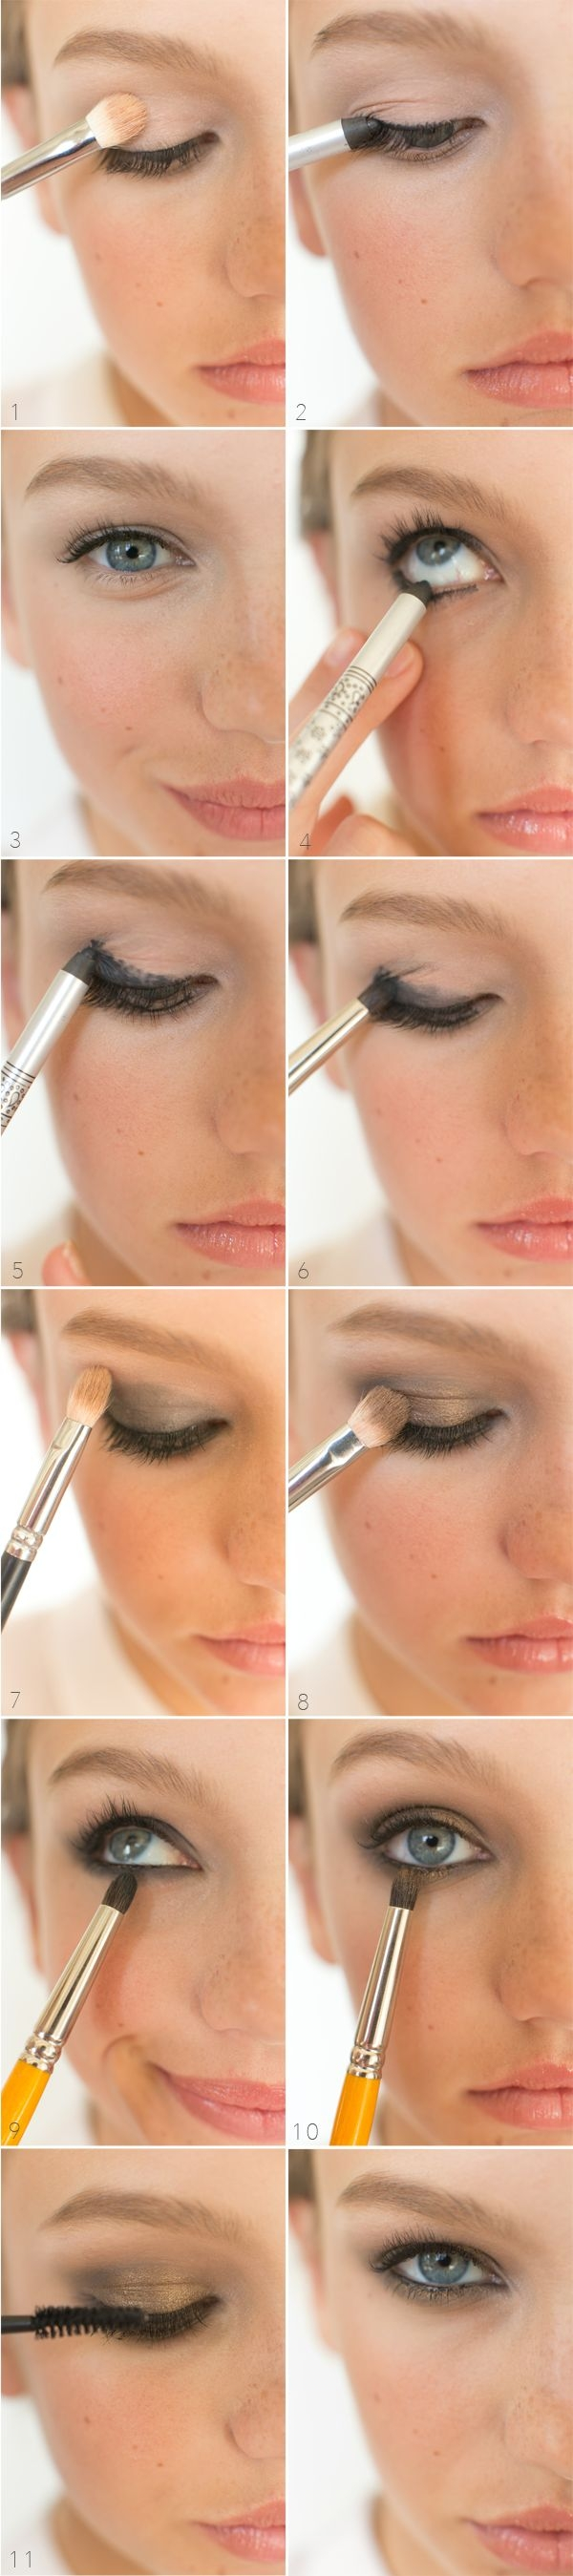 Get Ready For Date Night With These 20 Smokey Eye Tutorials